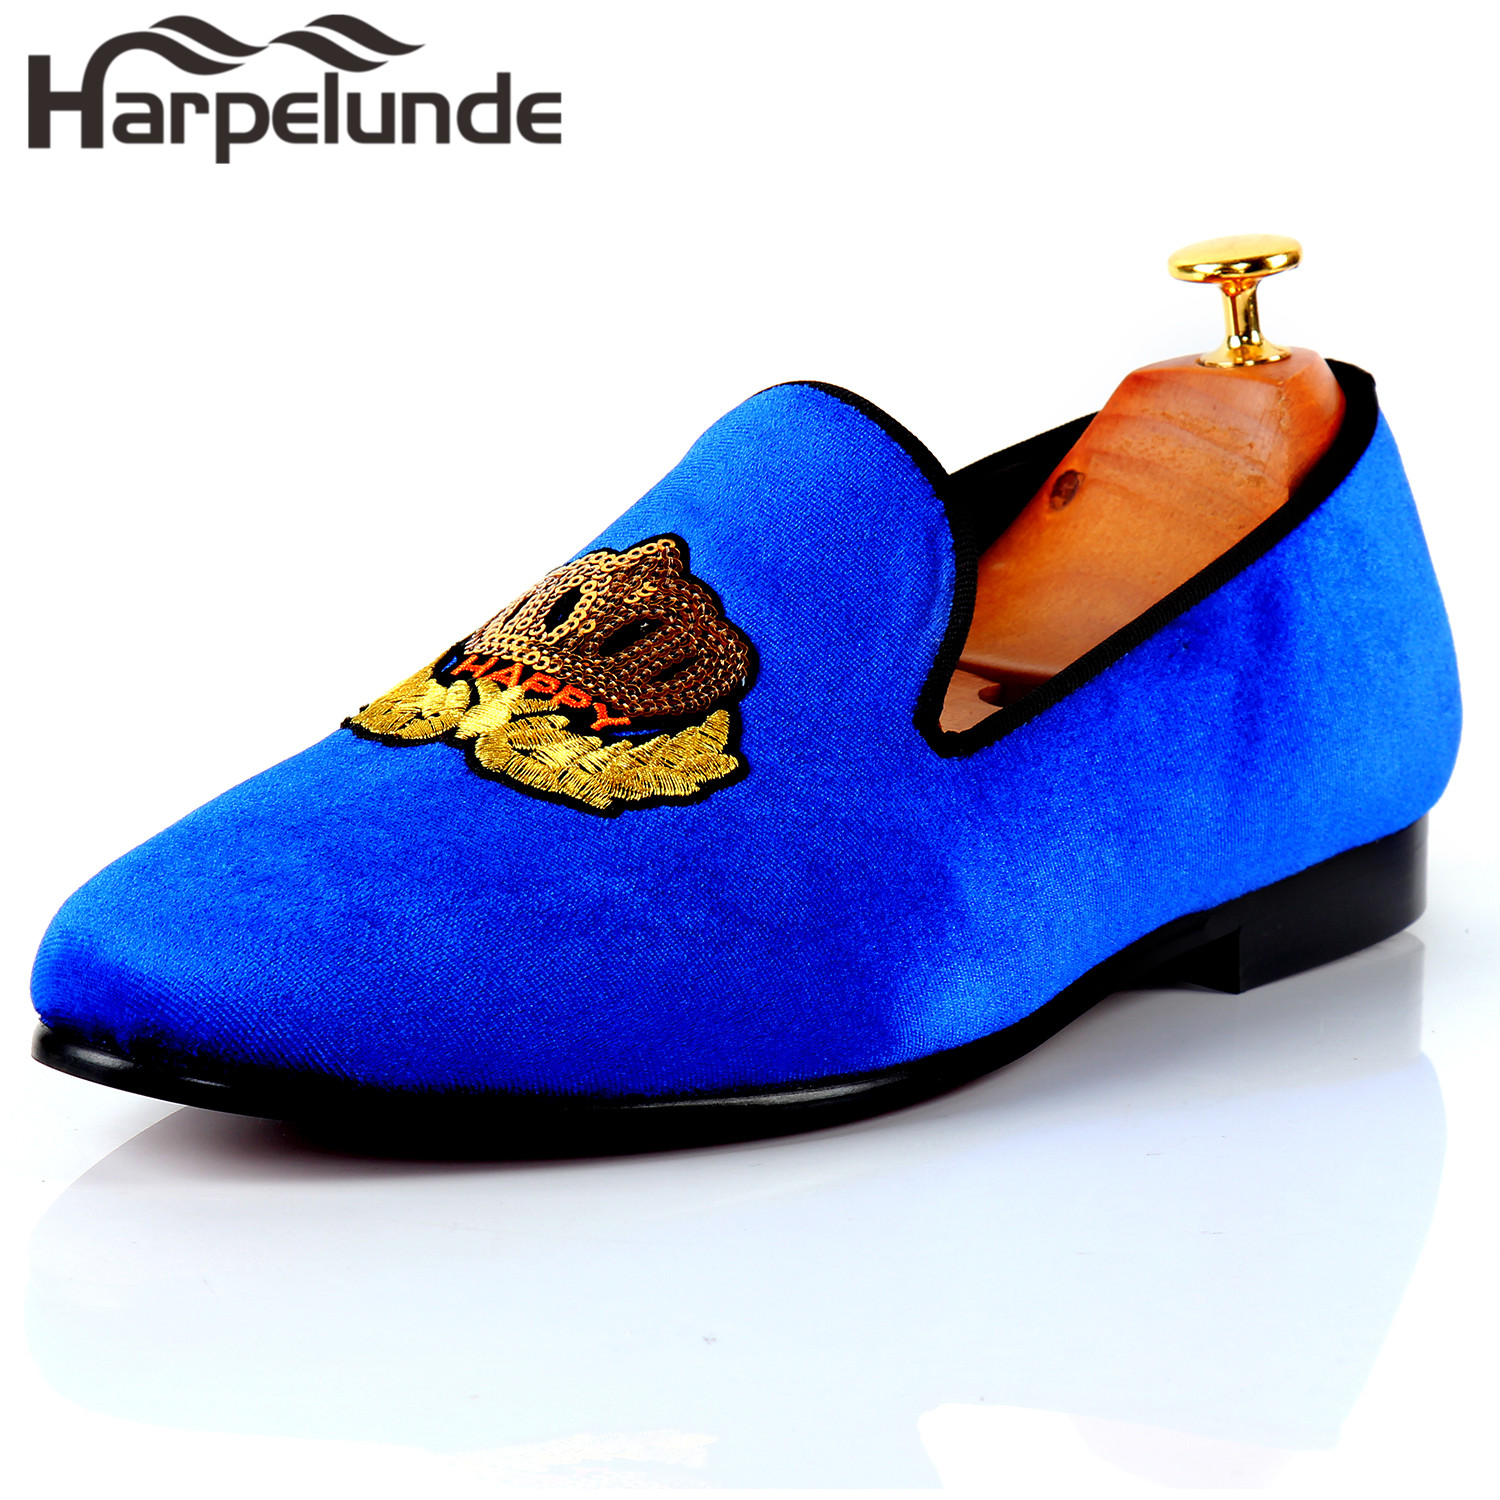 92a270d4634fb0 Harpelunde Men Classic Wedding Shoes Motif Badge Green Velvet Flat Loafers  Size 6 14-in Formal Shoes from Shoes on Aliexpress.com